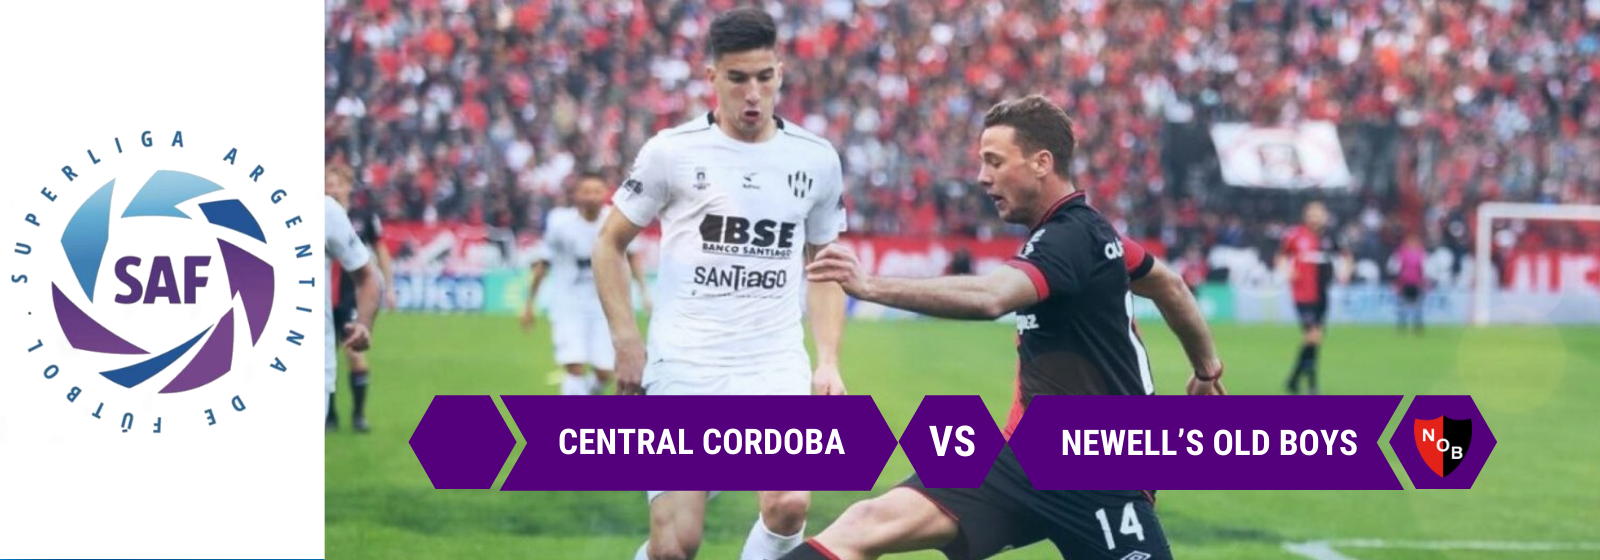 Asianconnect: Central Cordoba vs Newell's Odds for March 15, 2020